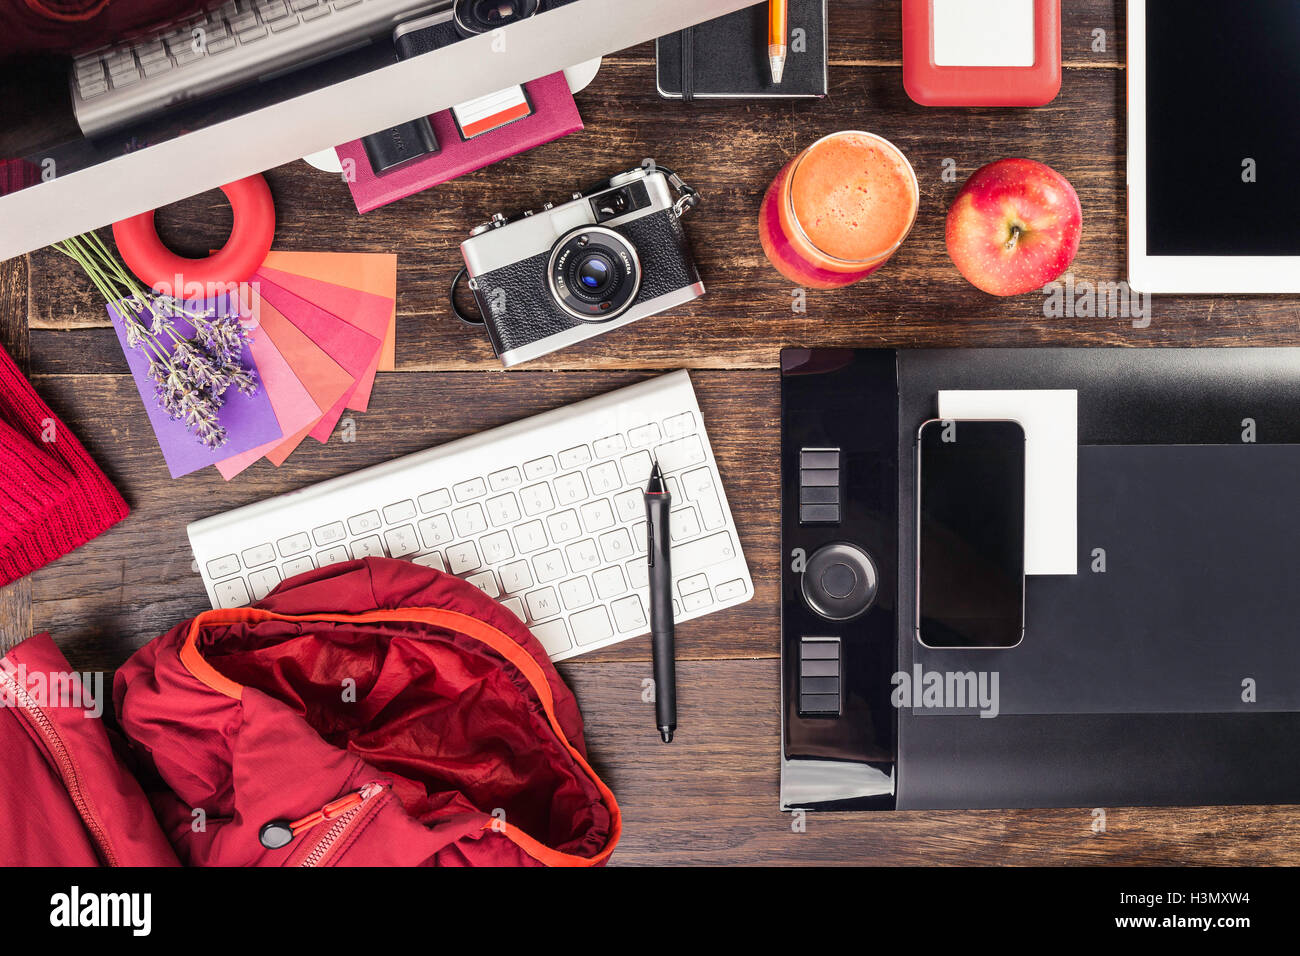 Overhead view of photo editing equipment; graphic tablet, digital tablet, retro camera, smartphone and desktop computer - Stock Image